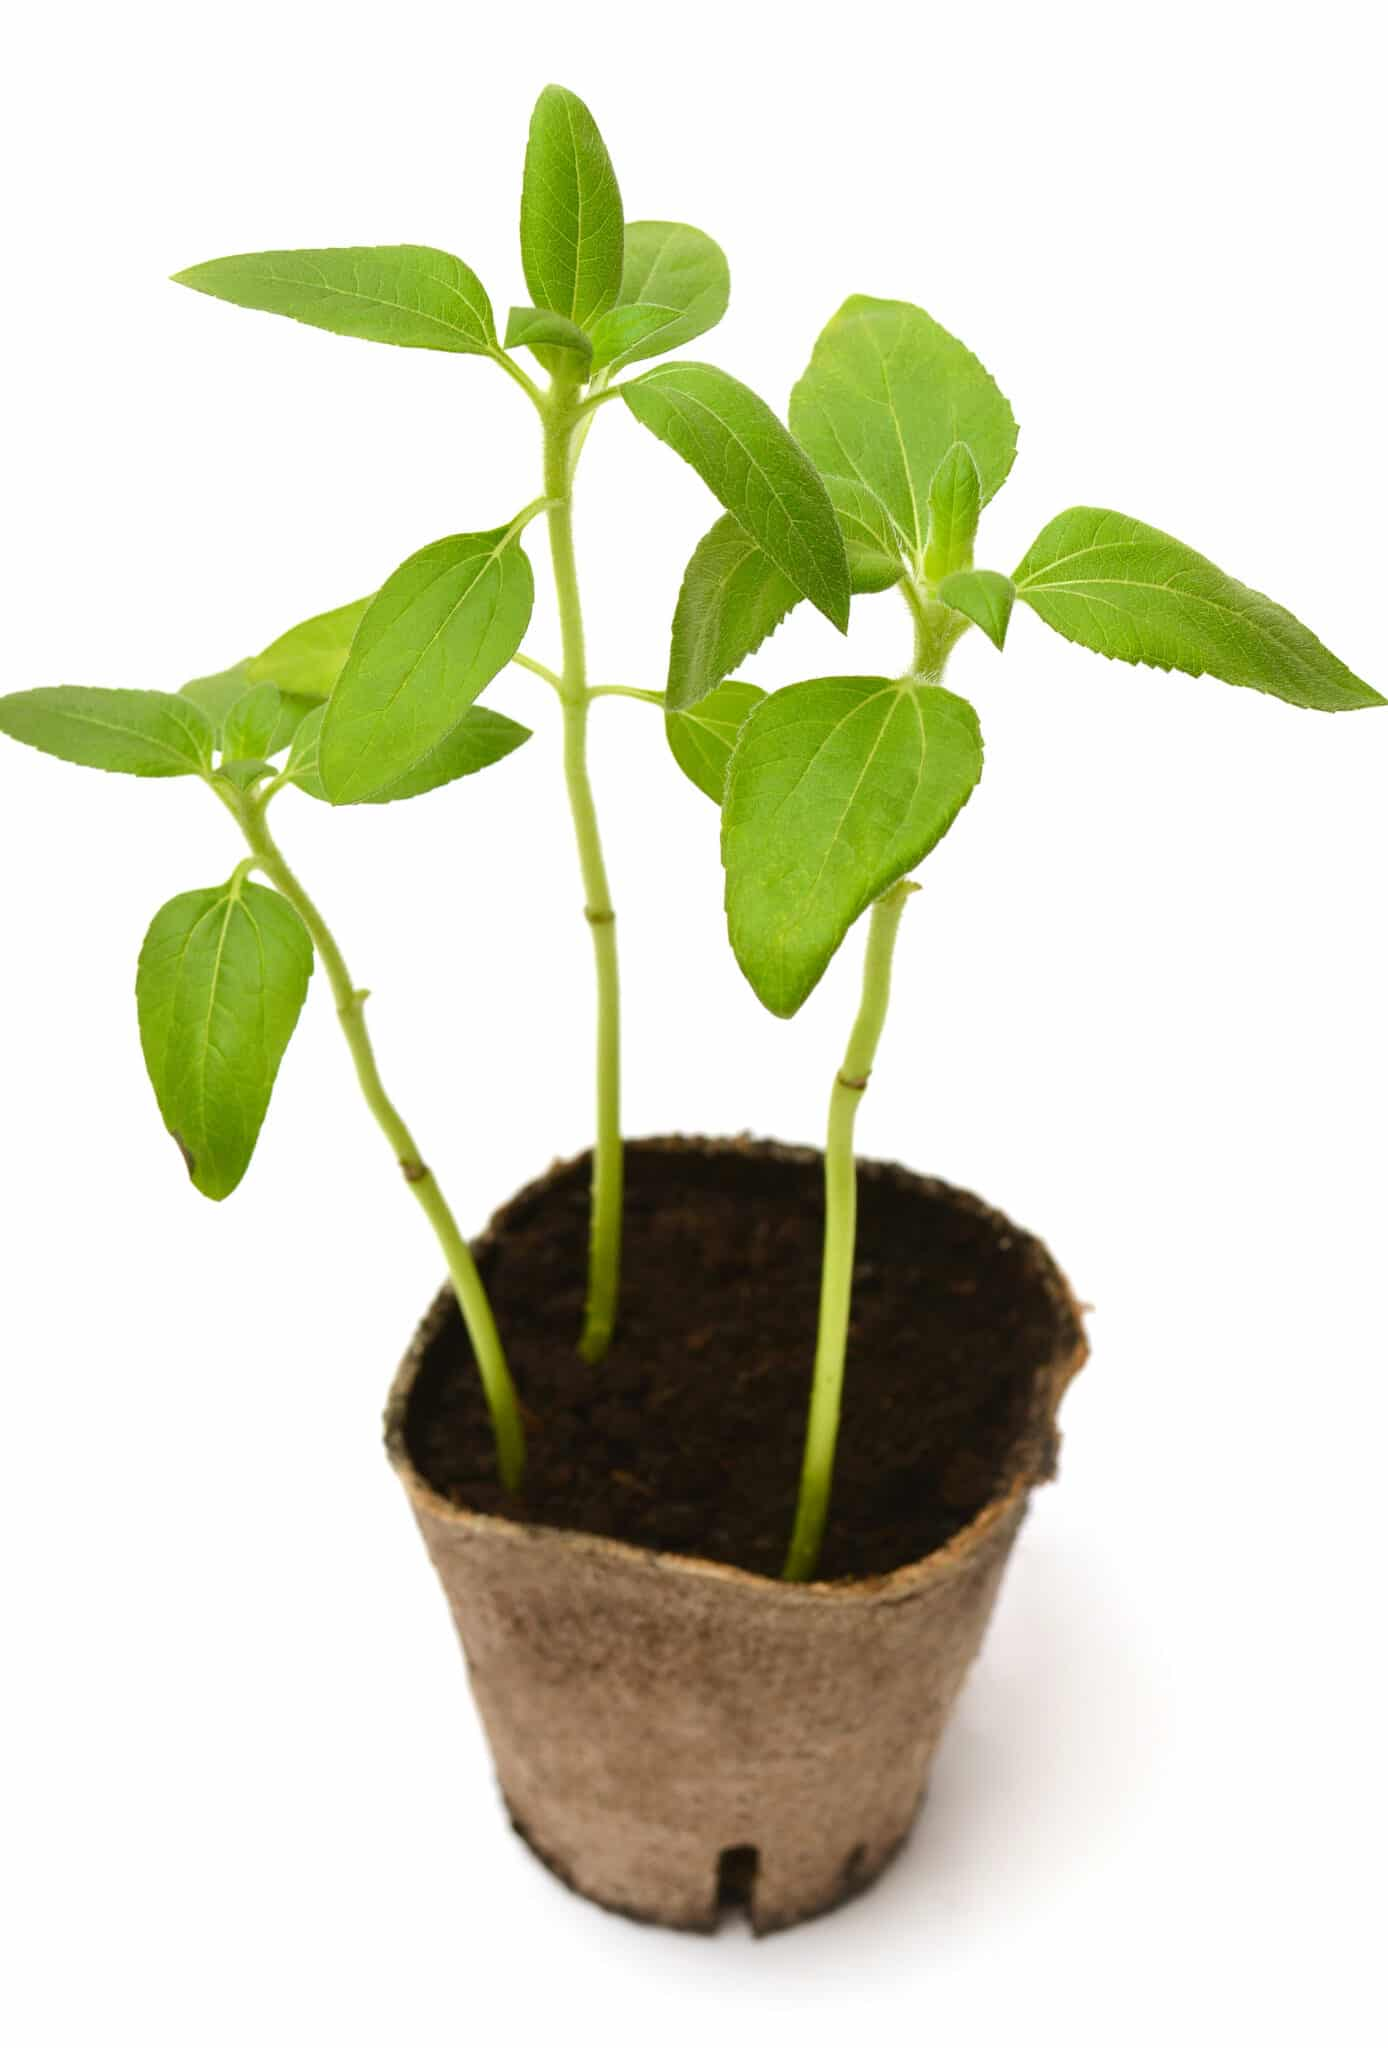 Three seedling sunflowers growing in a small peat pot.